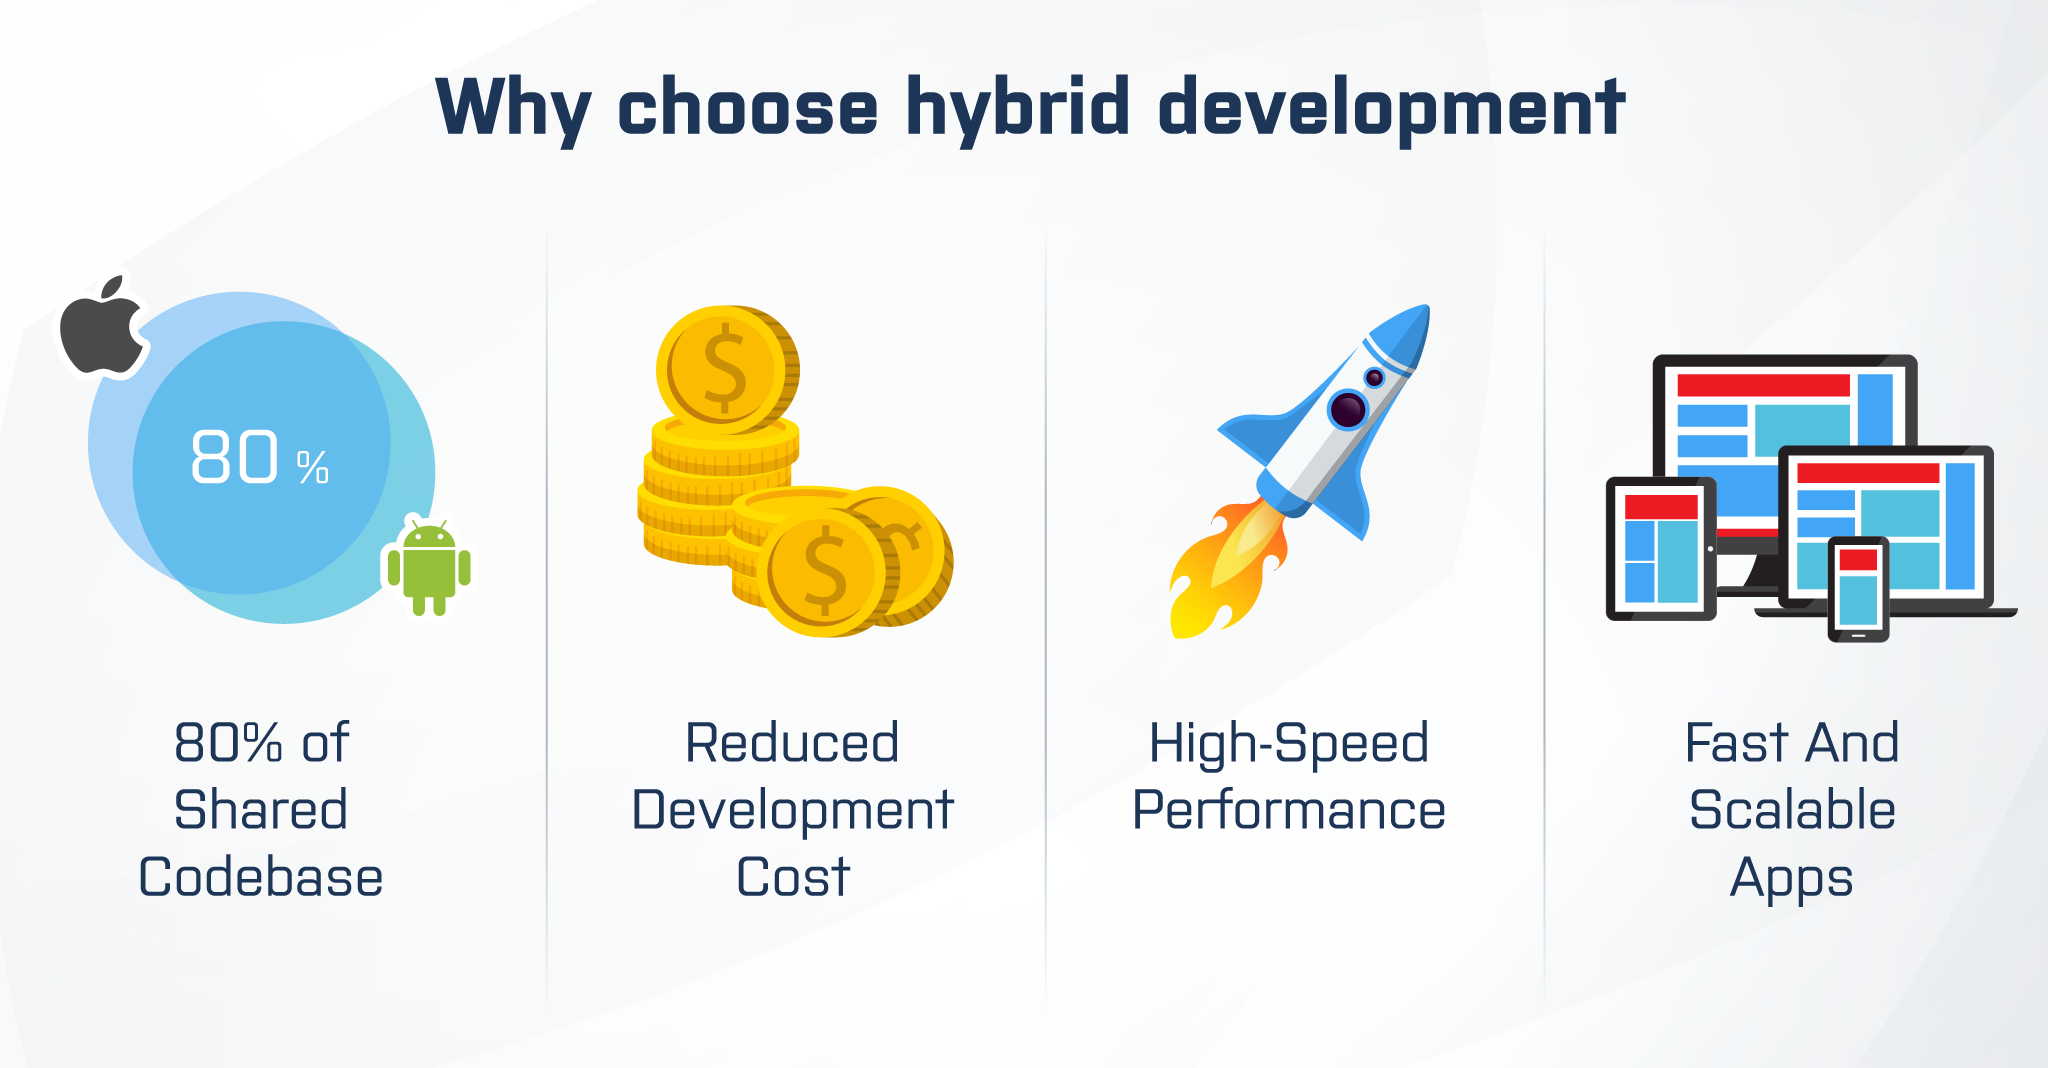 hybrid apps' advantages